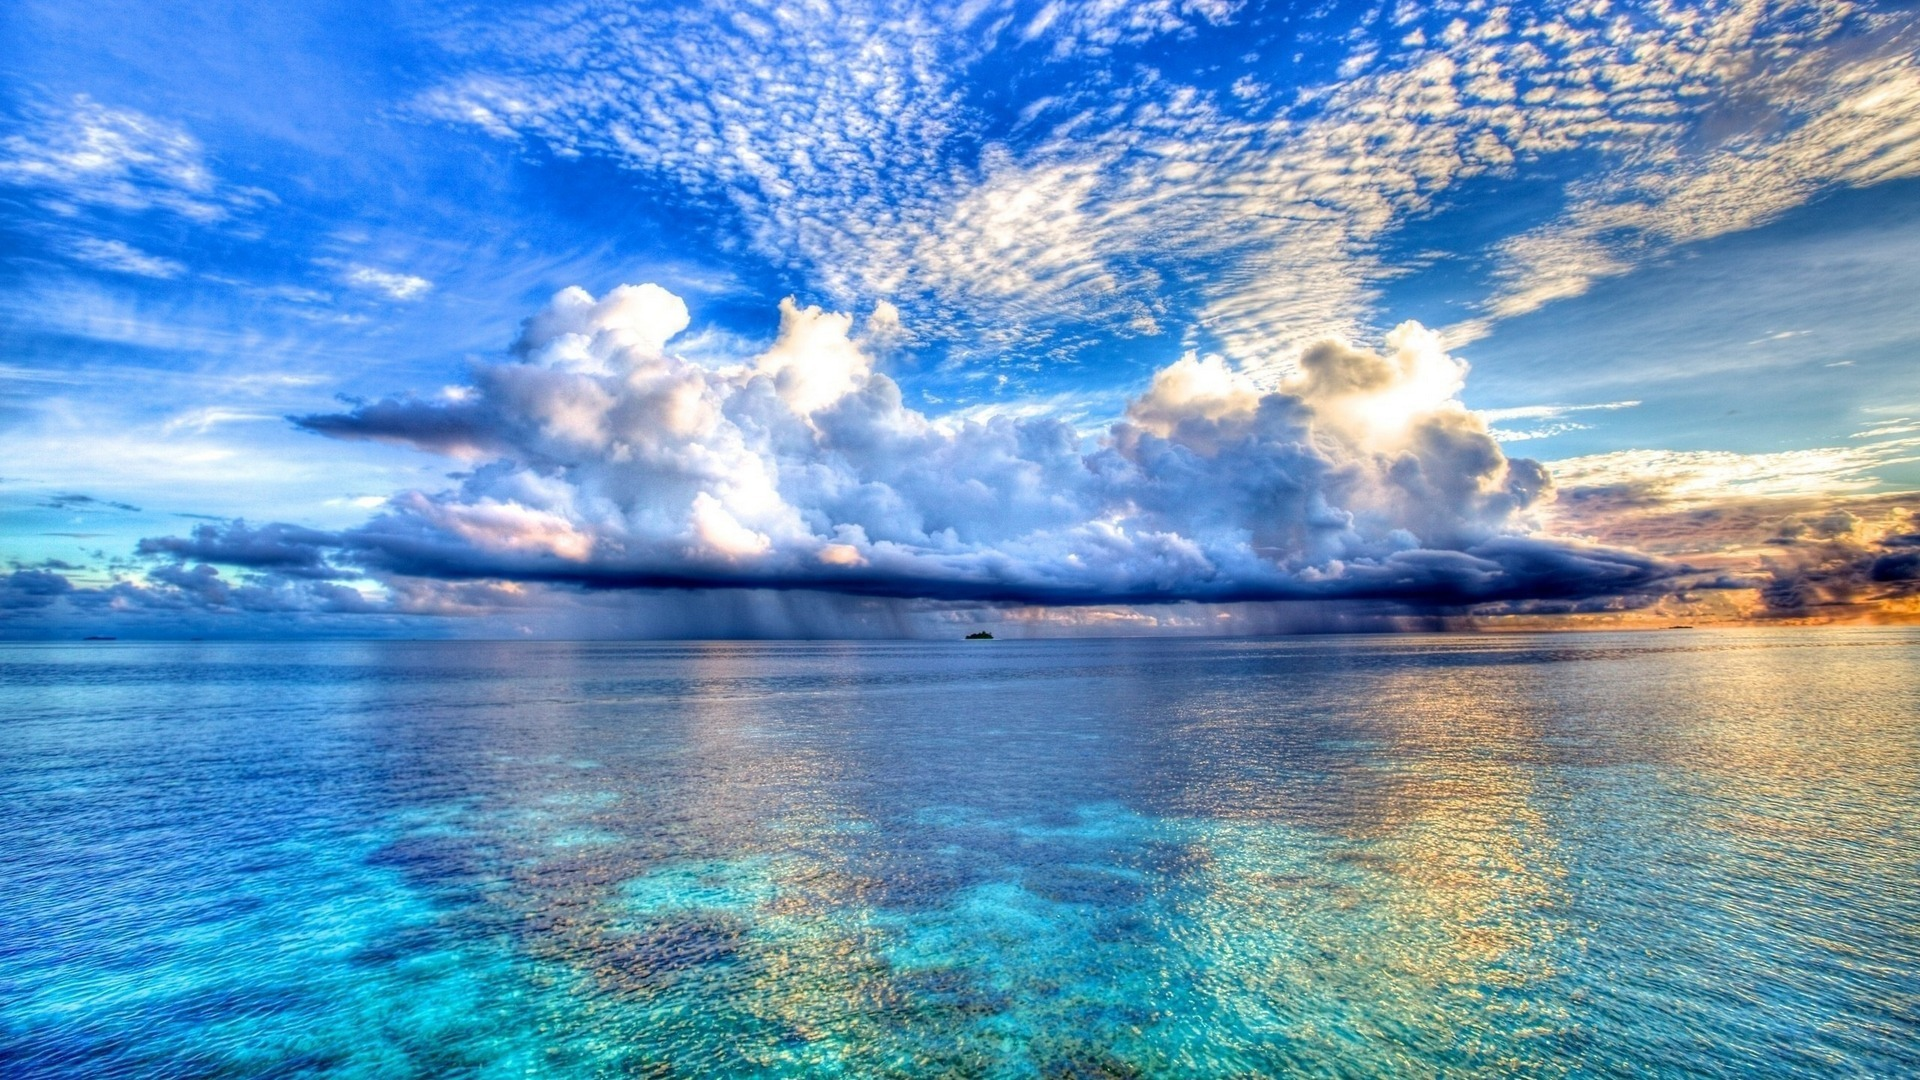 ocean wallpaper clouds